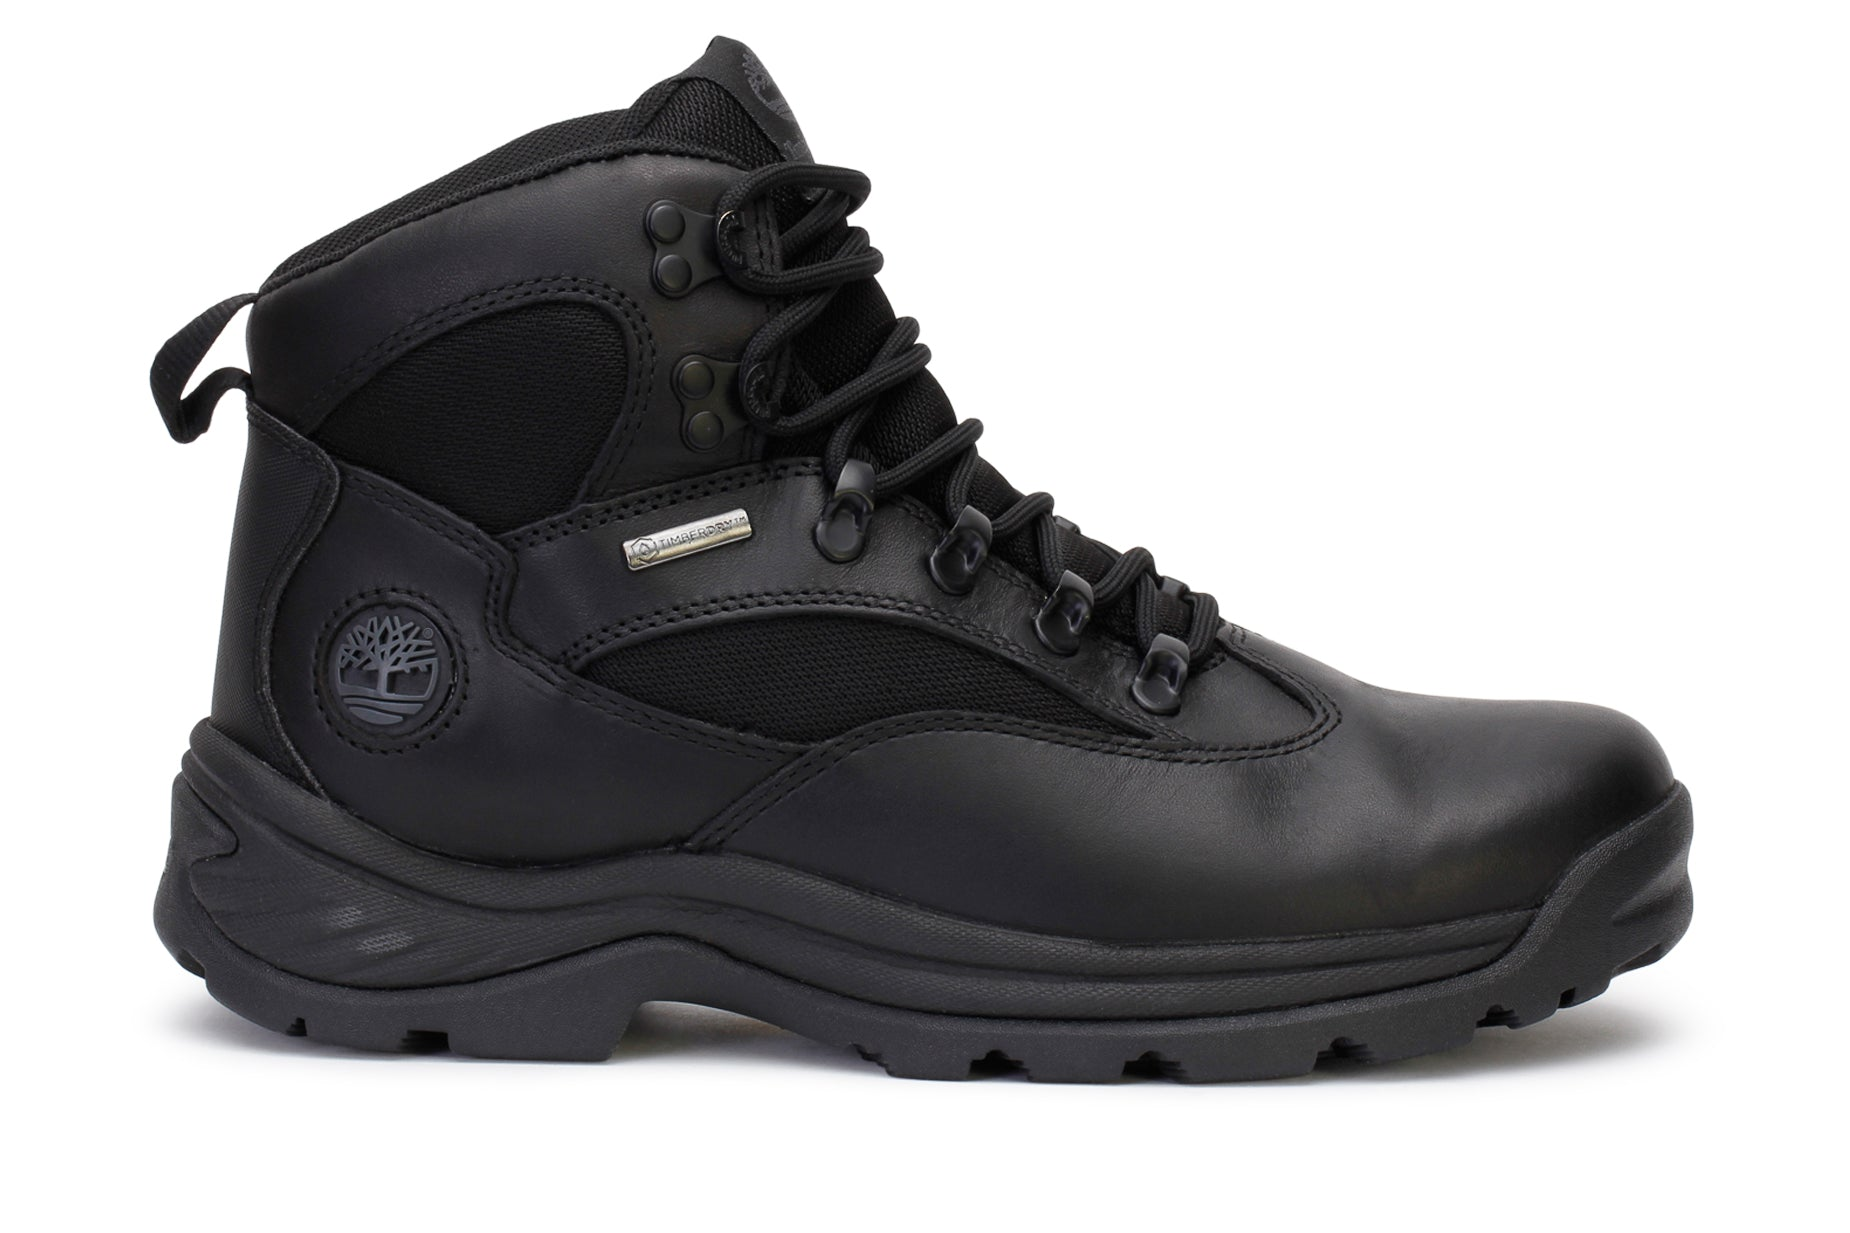 Chocura Trail Mid Waterproof Timberland Boots